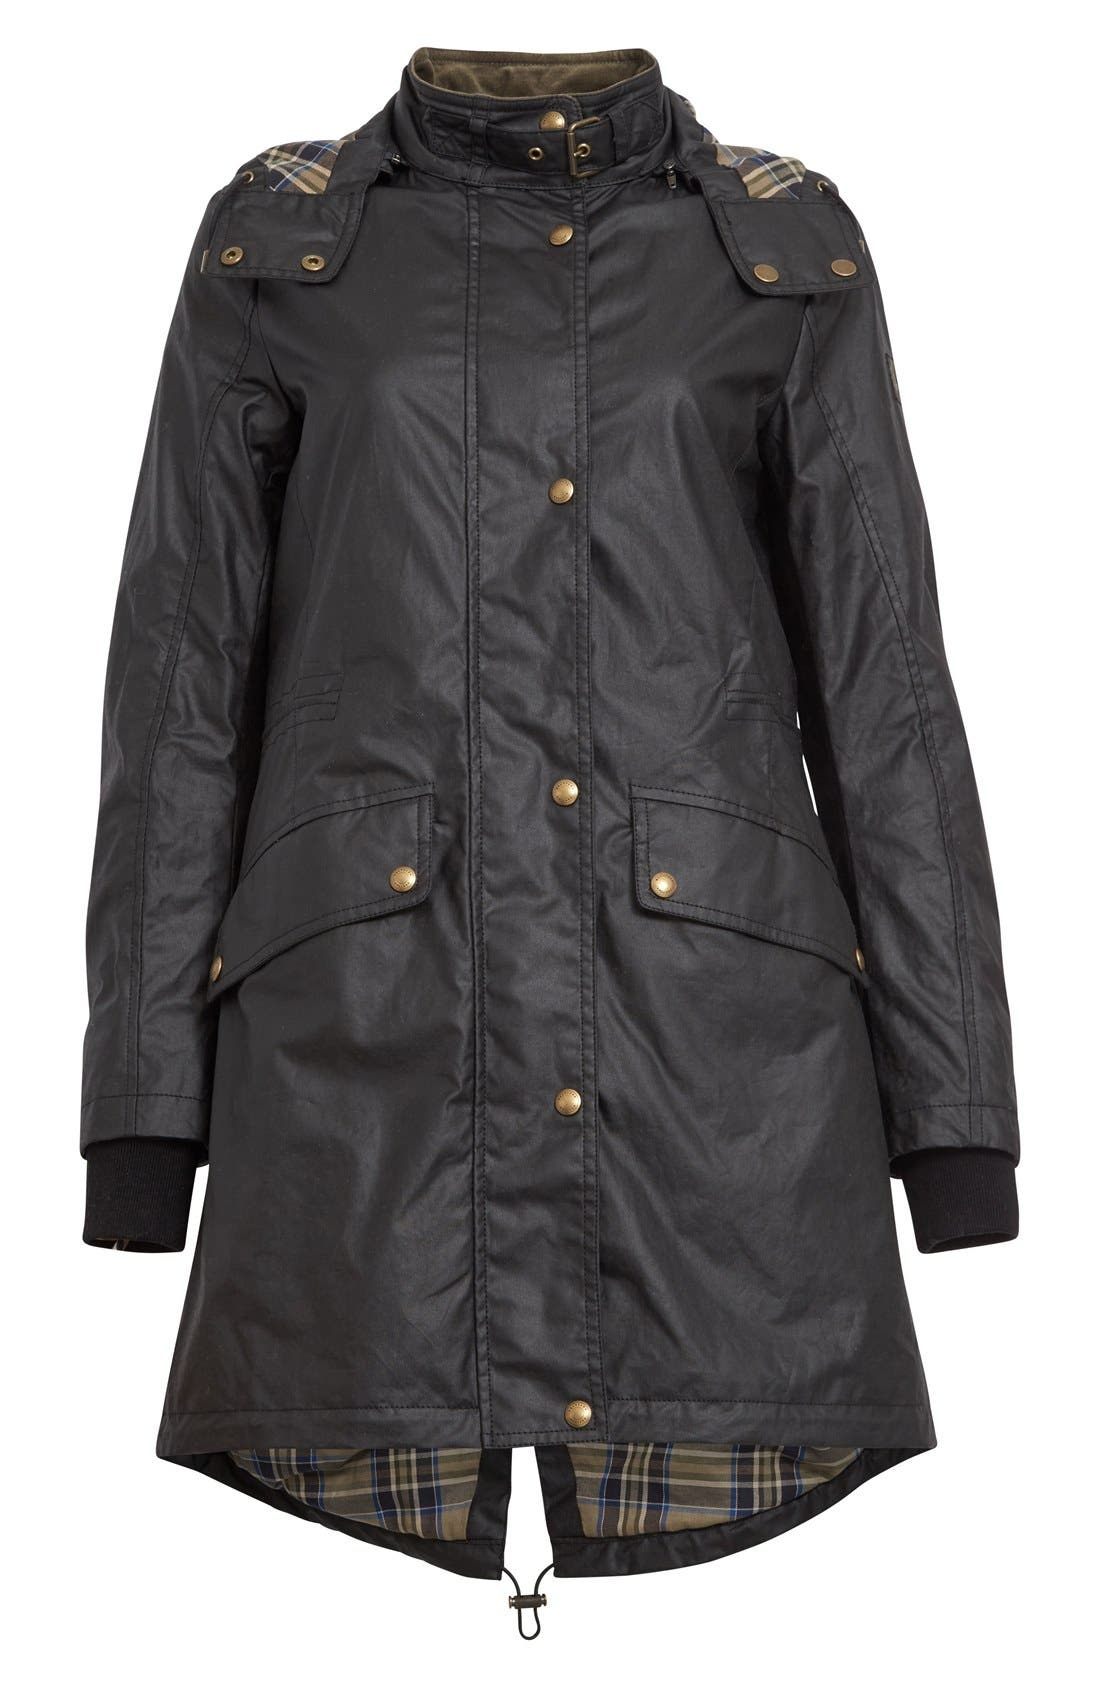 Wembury Waxed Cotton Jacket,                             Alternate thumbnail 4, color,                             001